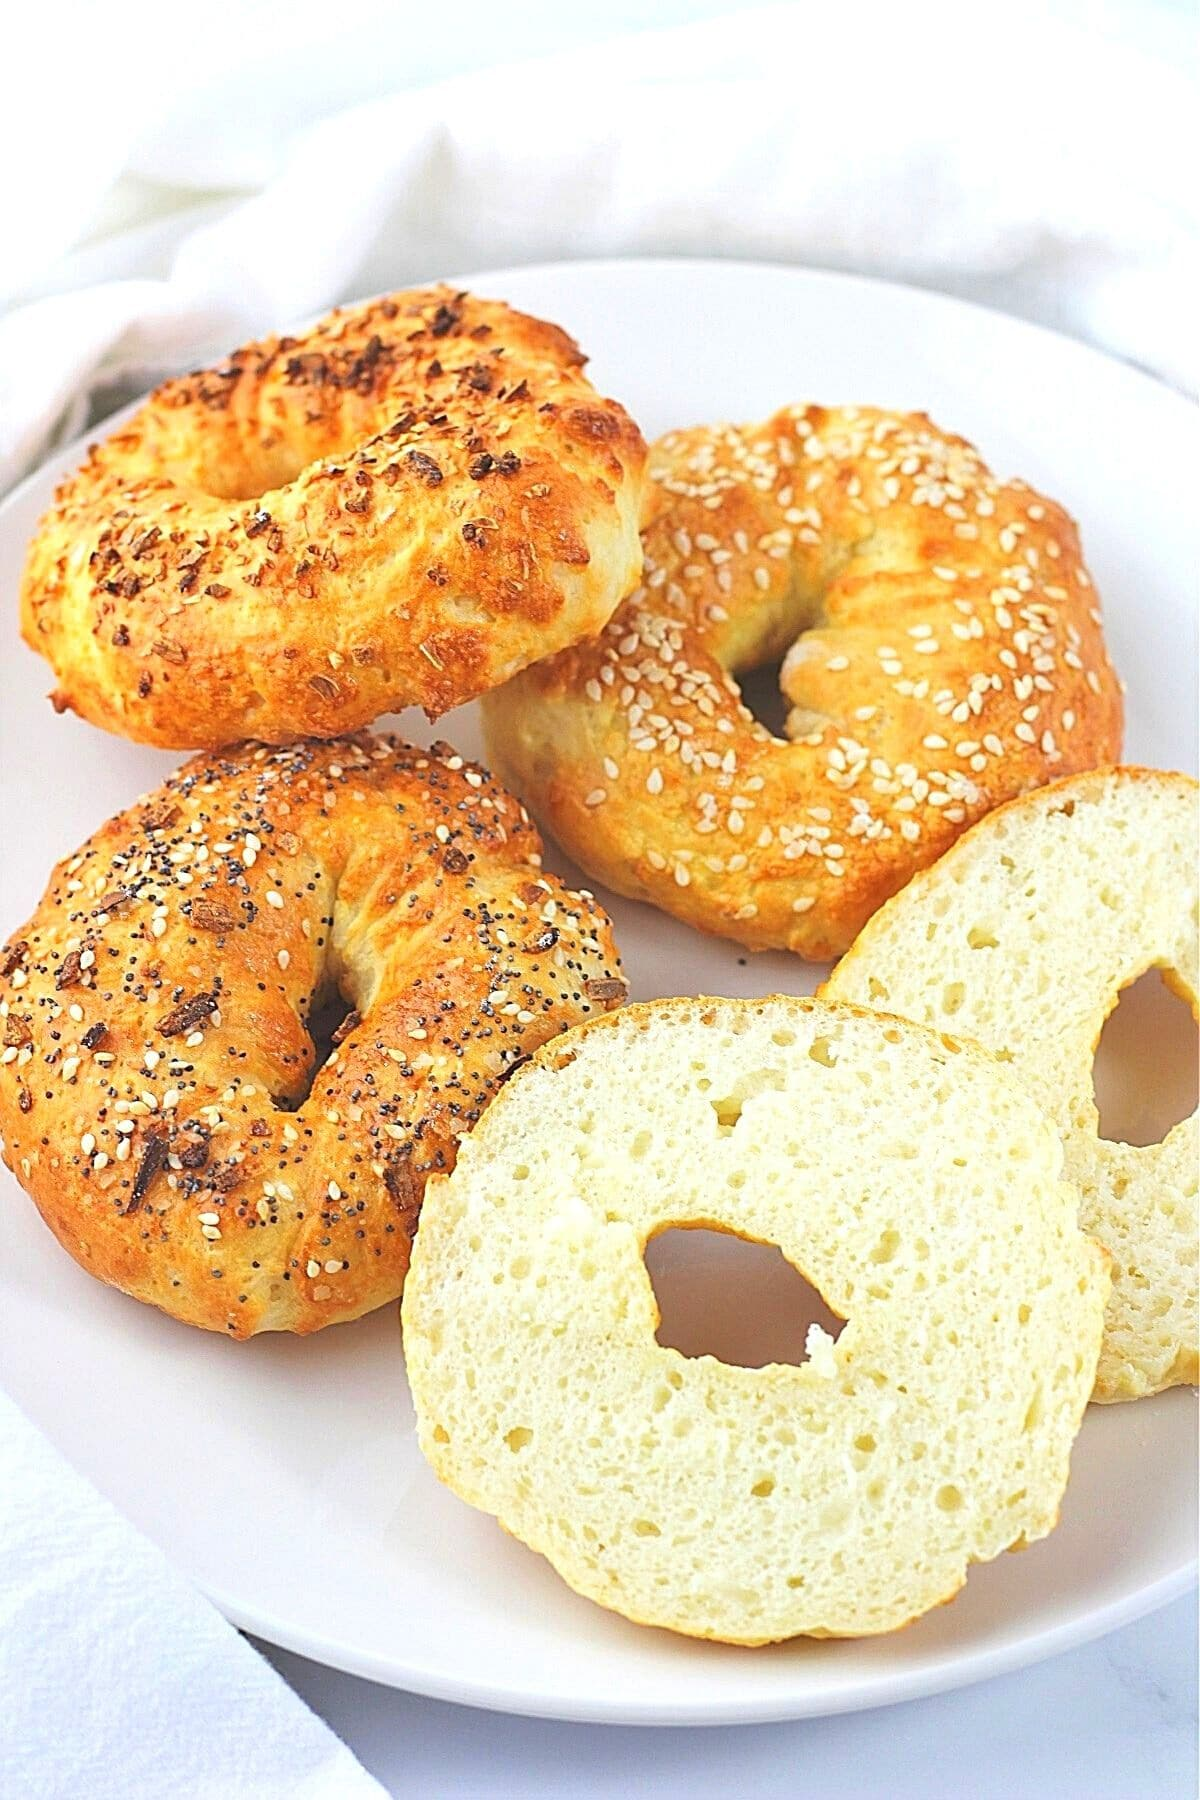 air fryer bagels on a white plate with one bagel cut in half showing the inside